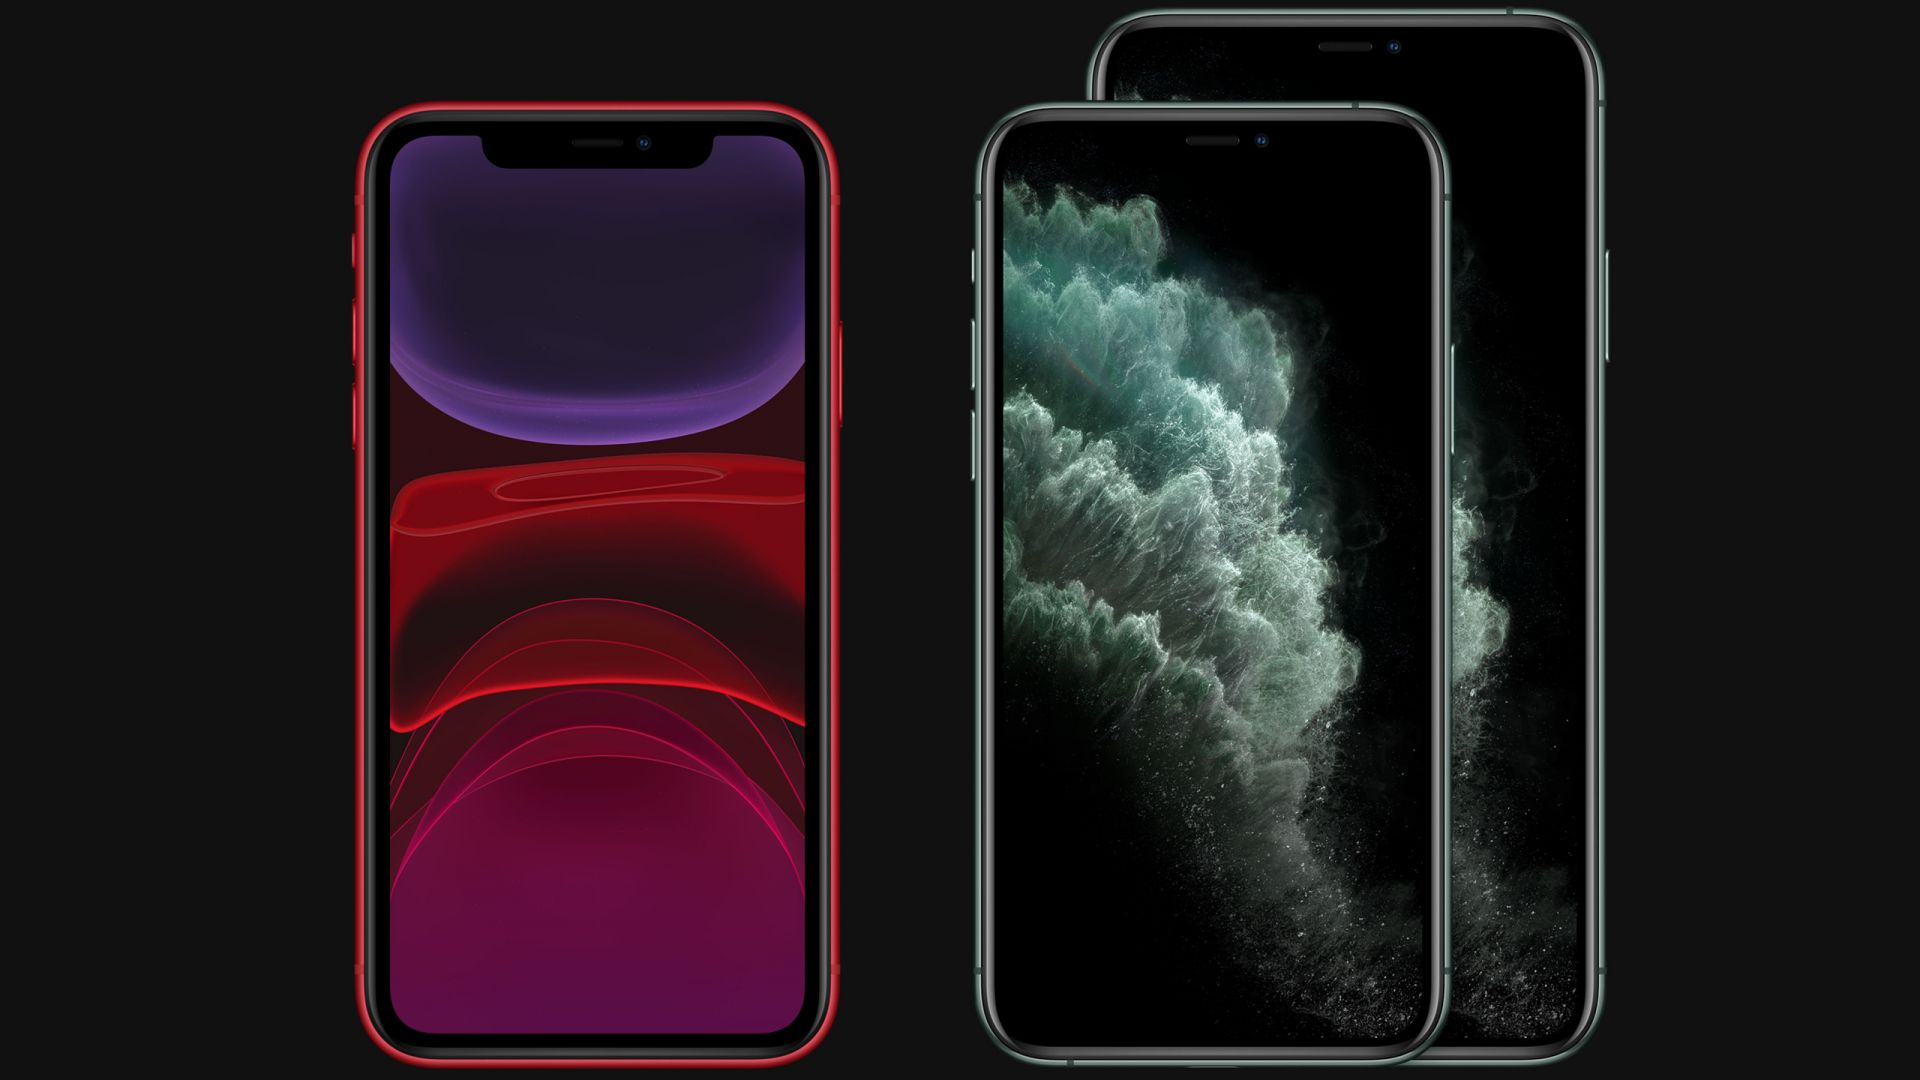 iPhone 11, iPhone 11 Pro, iPhone 11 Pro Max, Apple September 2019 Event (horizontal)